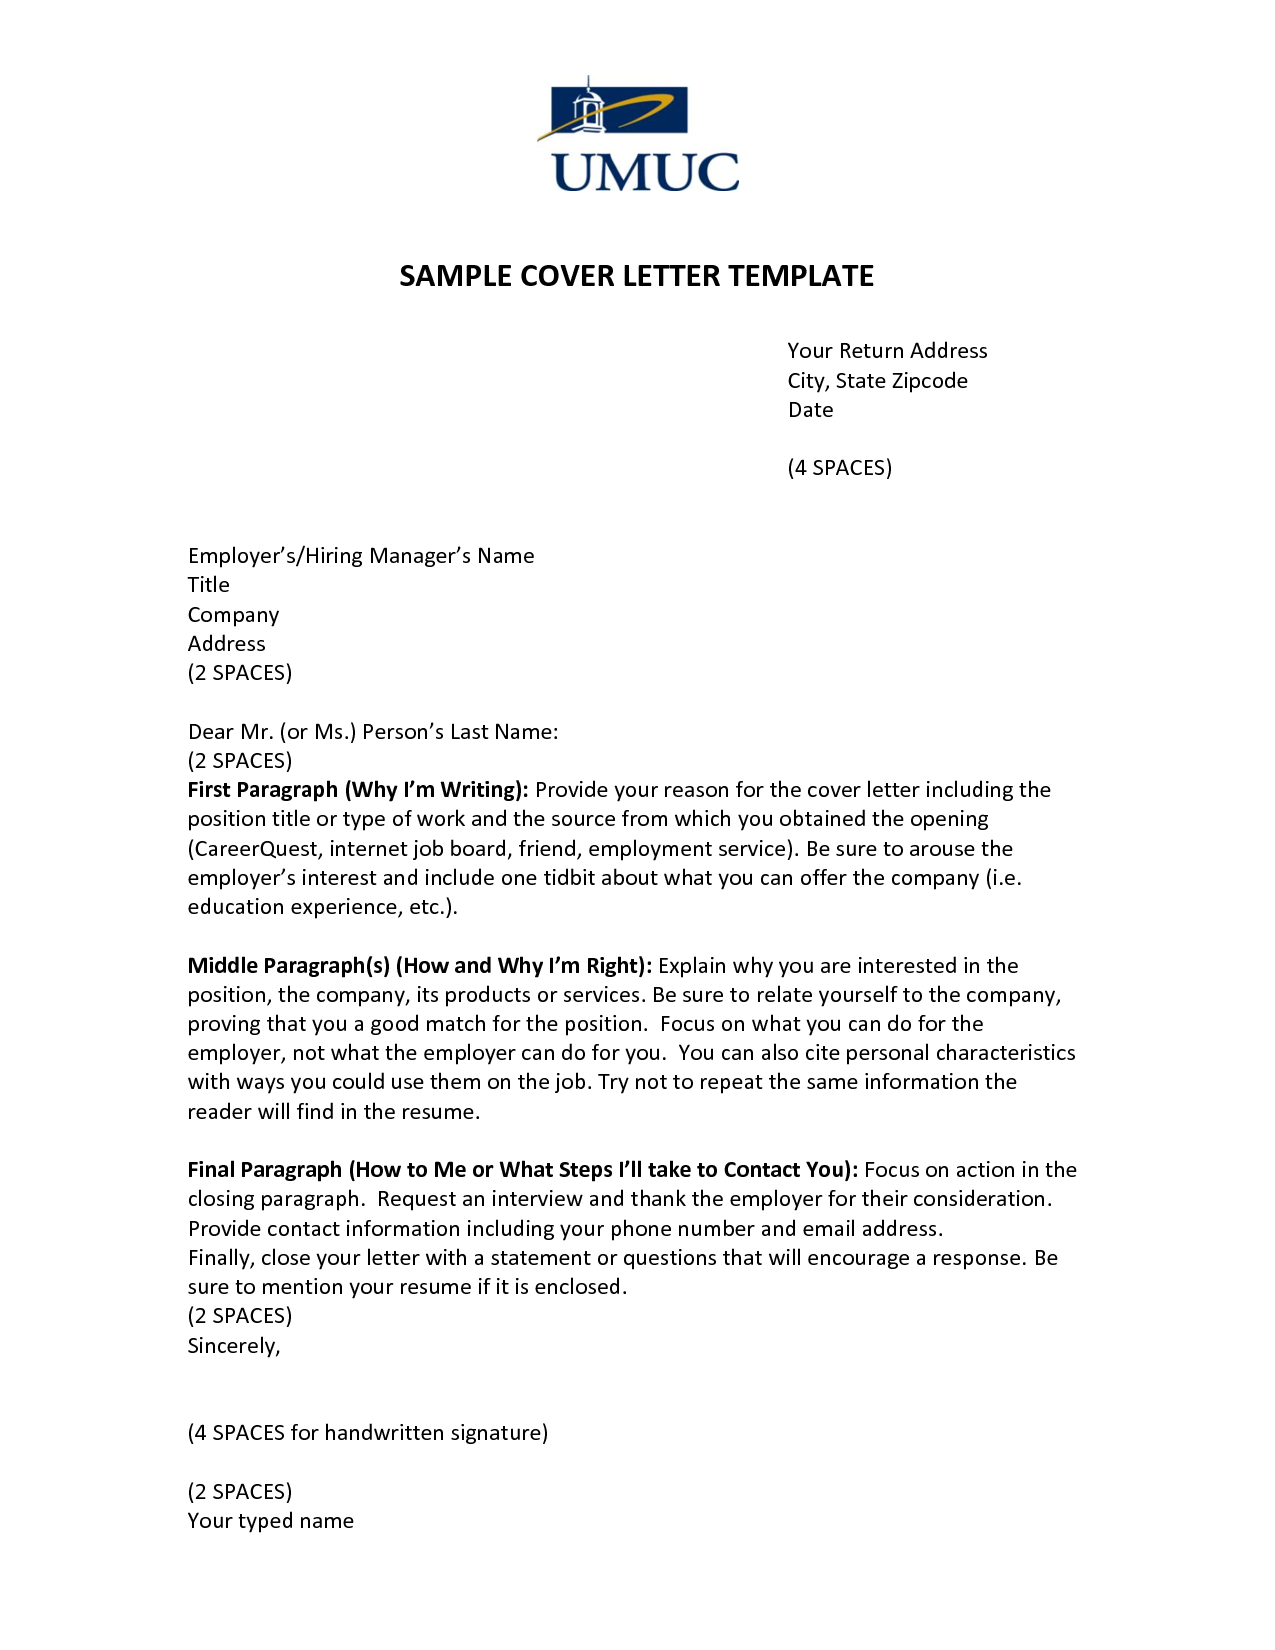 Sample Cover Letter Template Umucover Letter Template Application